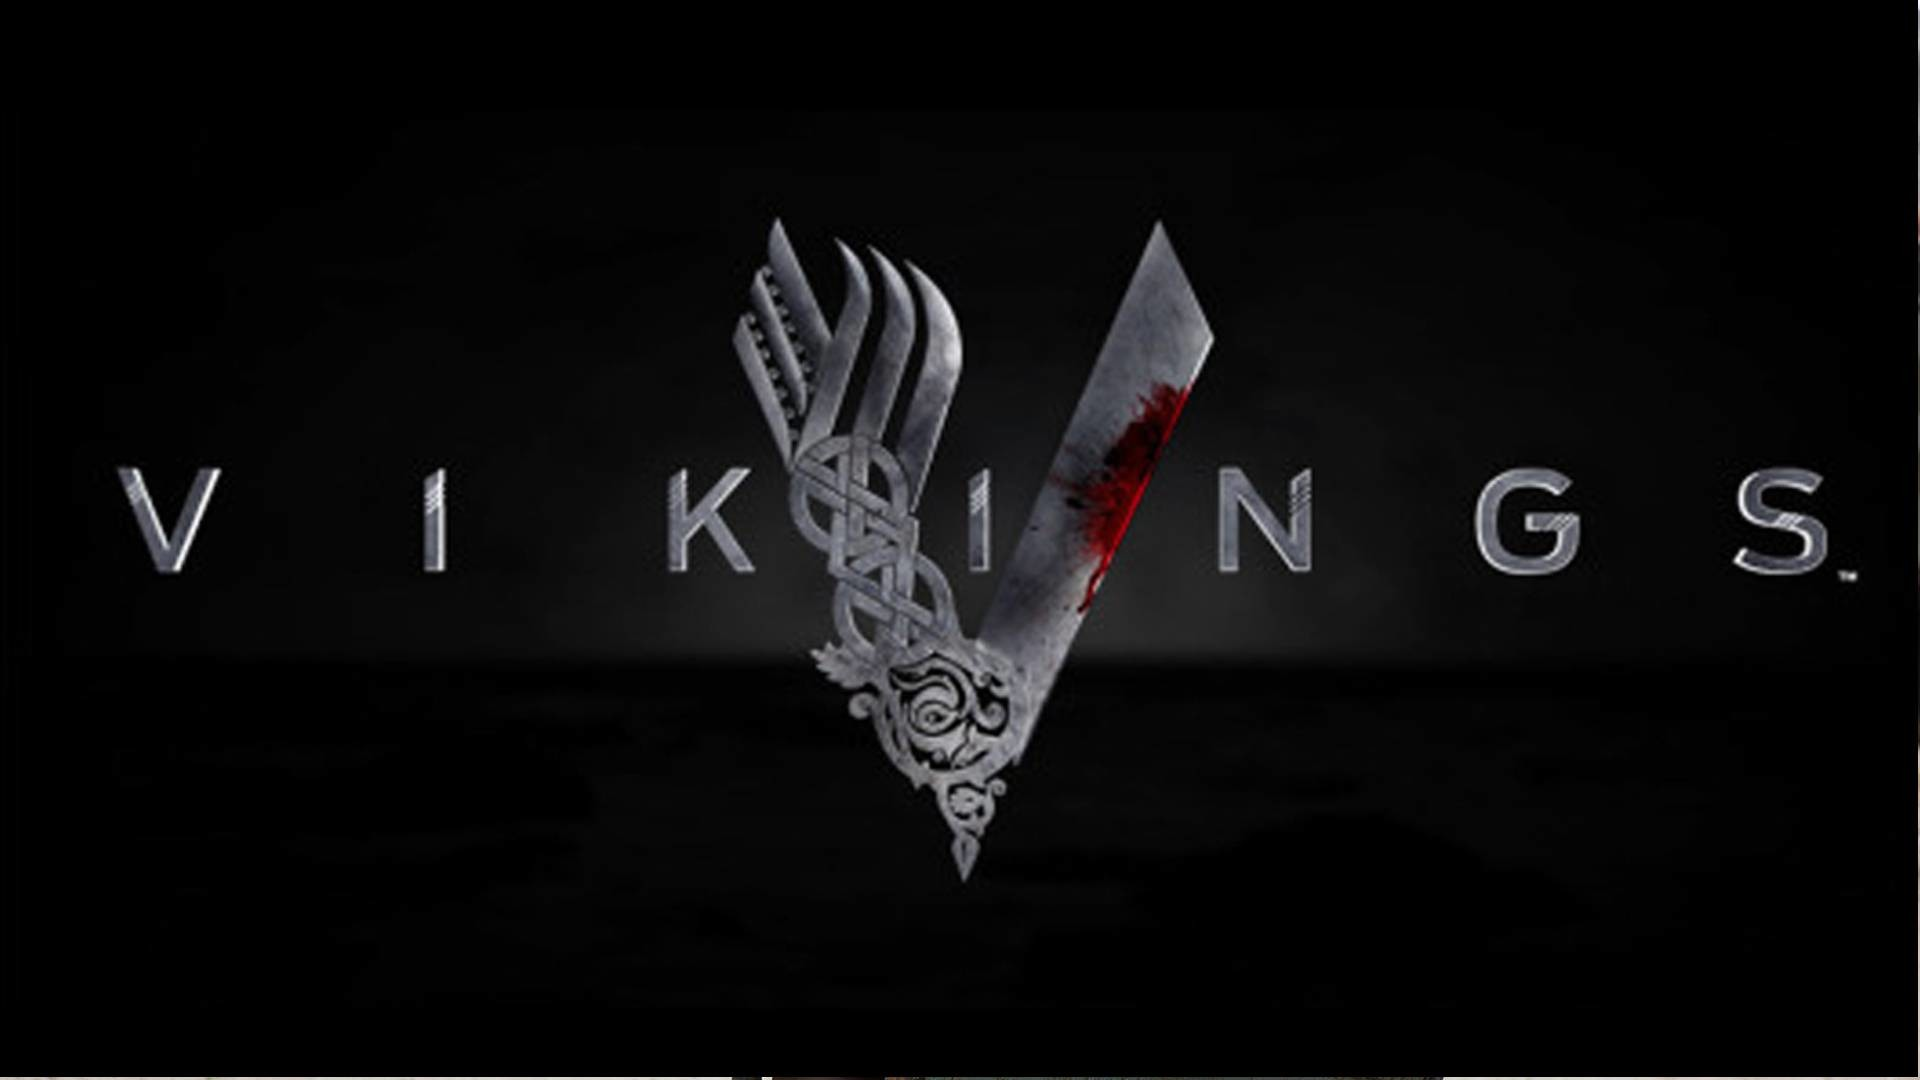 Viking Wallpaper 4k Posted By Christopher Thompson